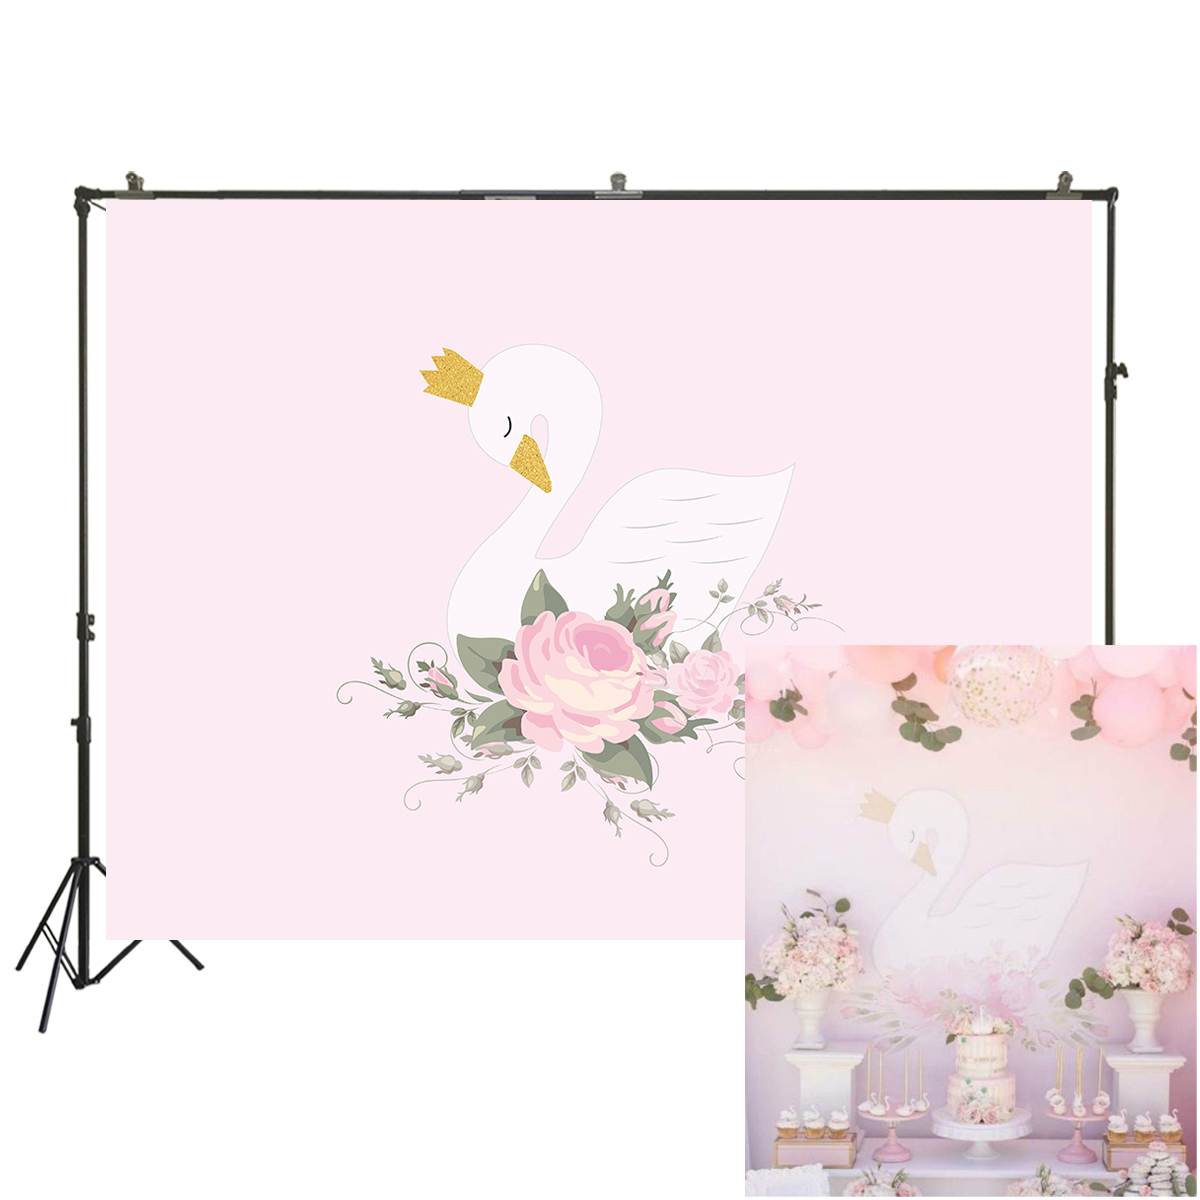 White Swan Pink Flowers Backdrops for Photography Birthday Party Decoration Cake Dessert Banner Baby Shower Studio Props W-1893